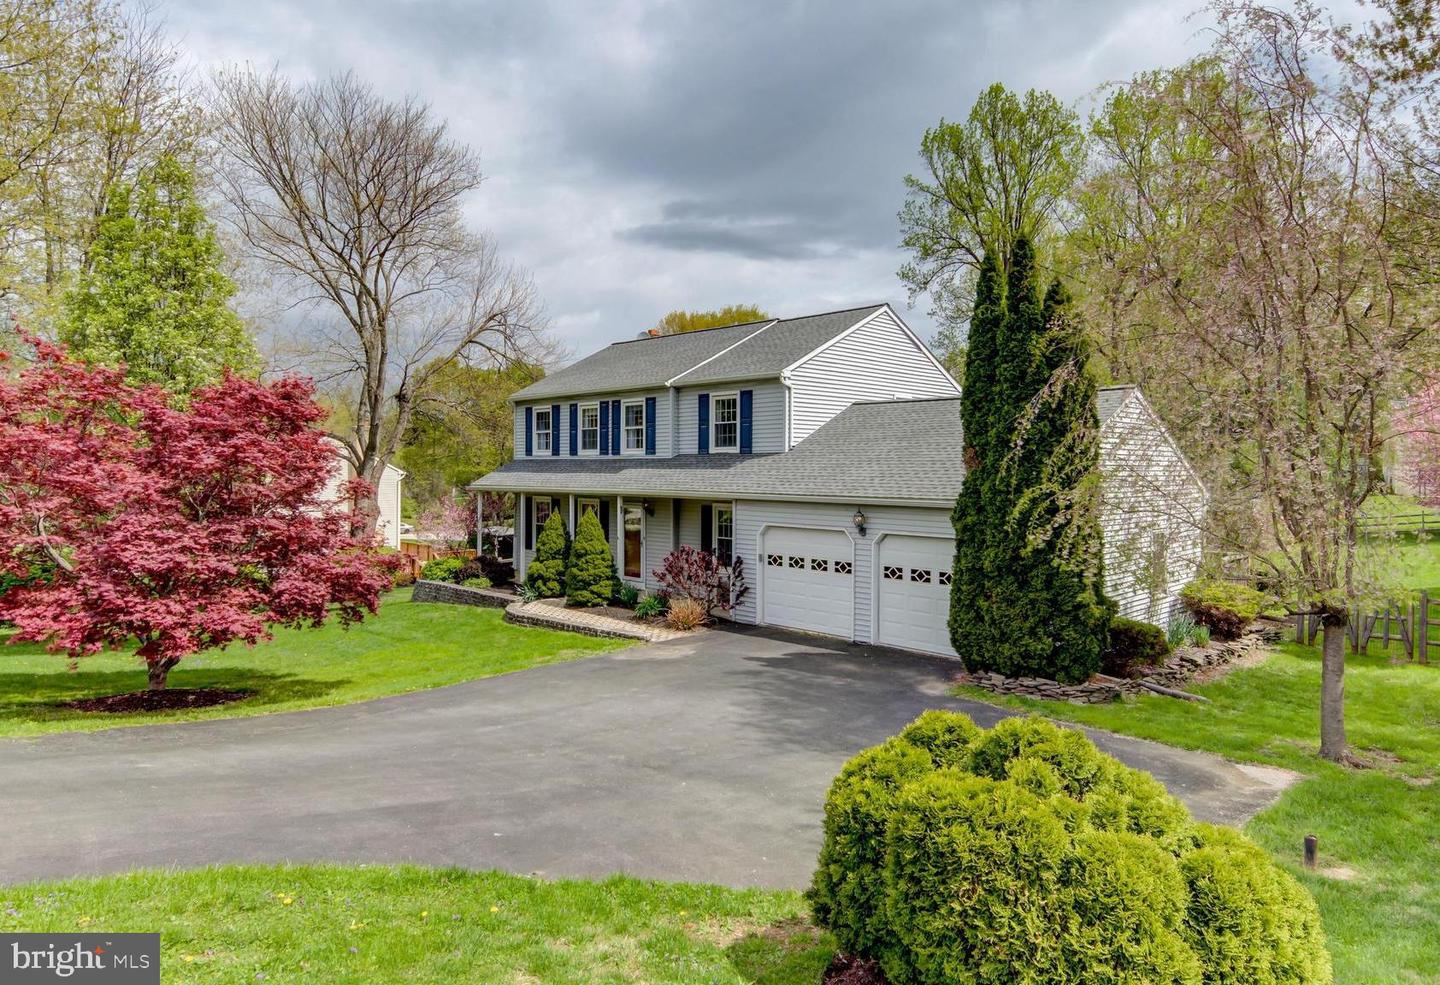 1303 Erin Drive West Chester, PA 19380